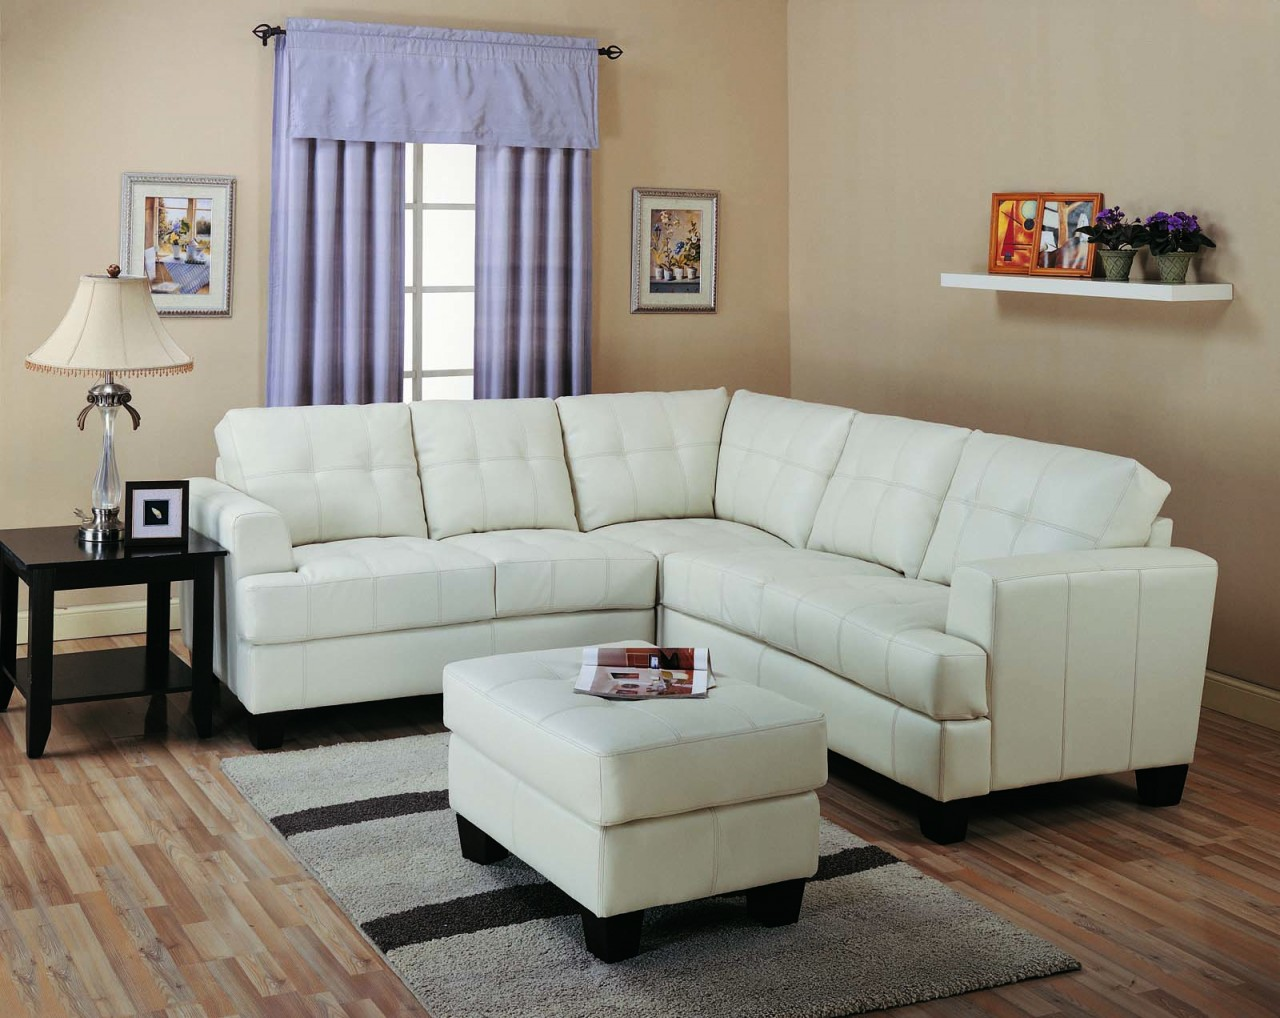 Types of best small sectional couches for small living for Family room with sectional sofa